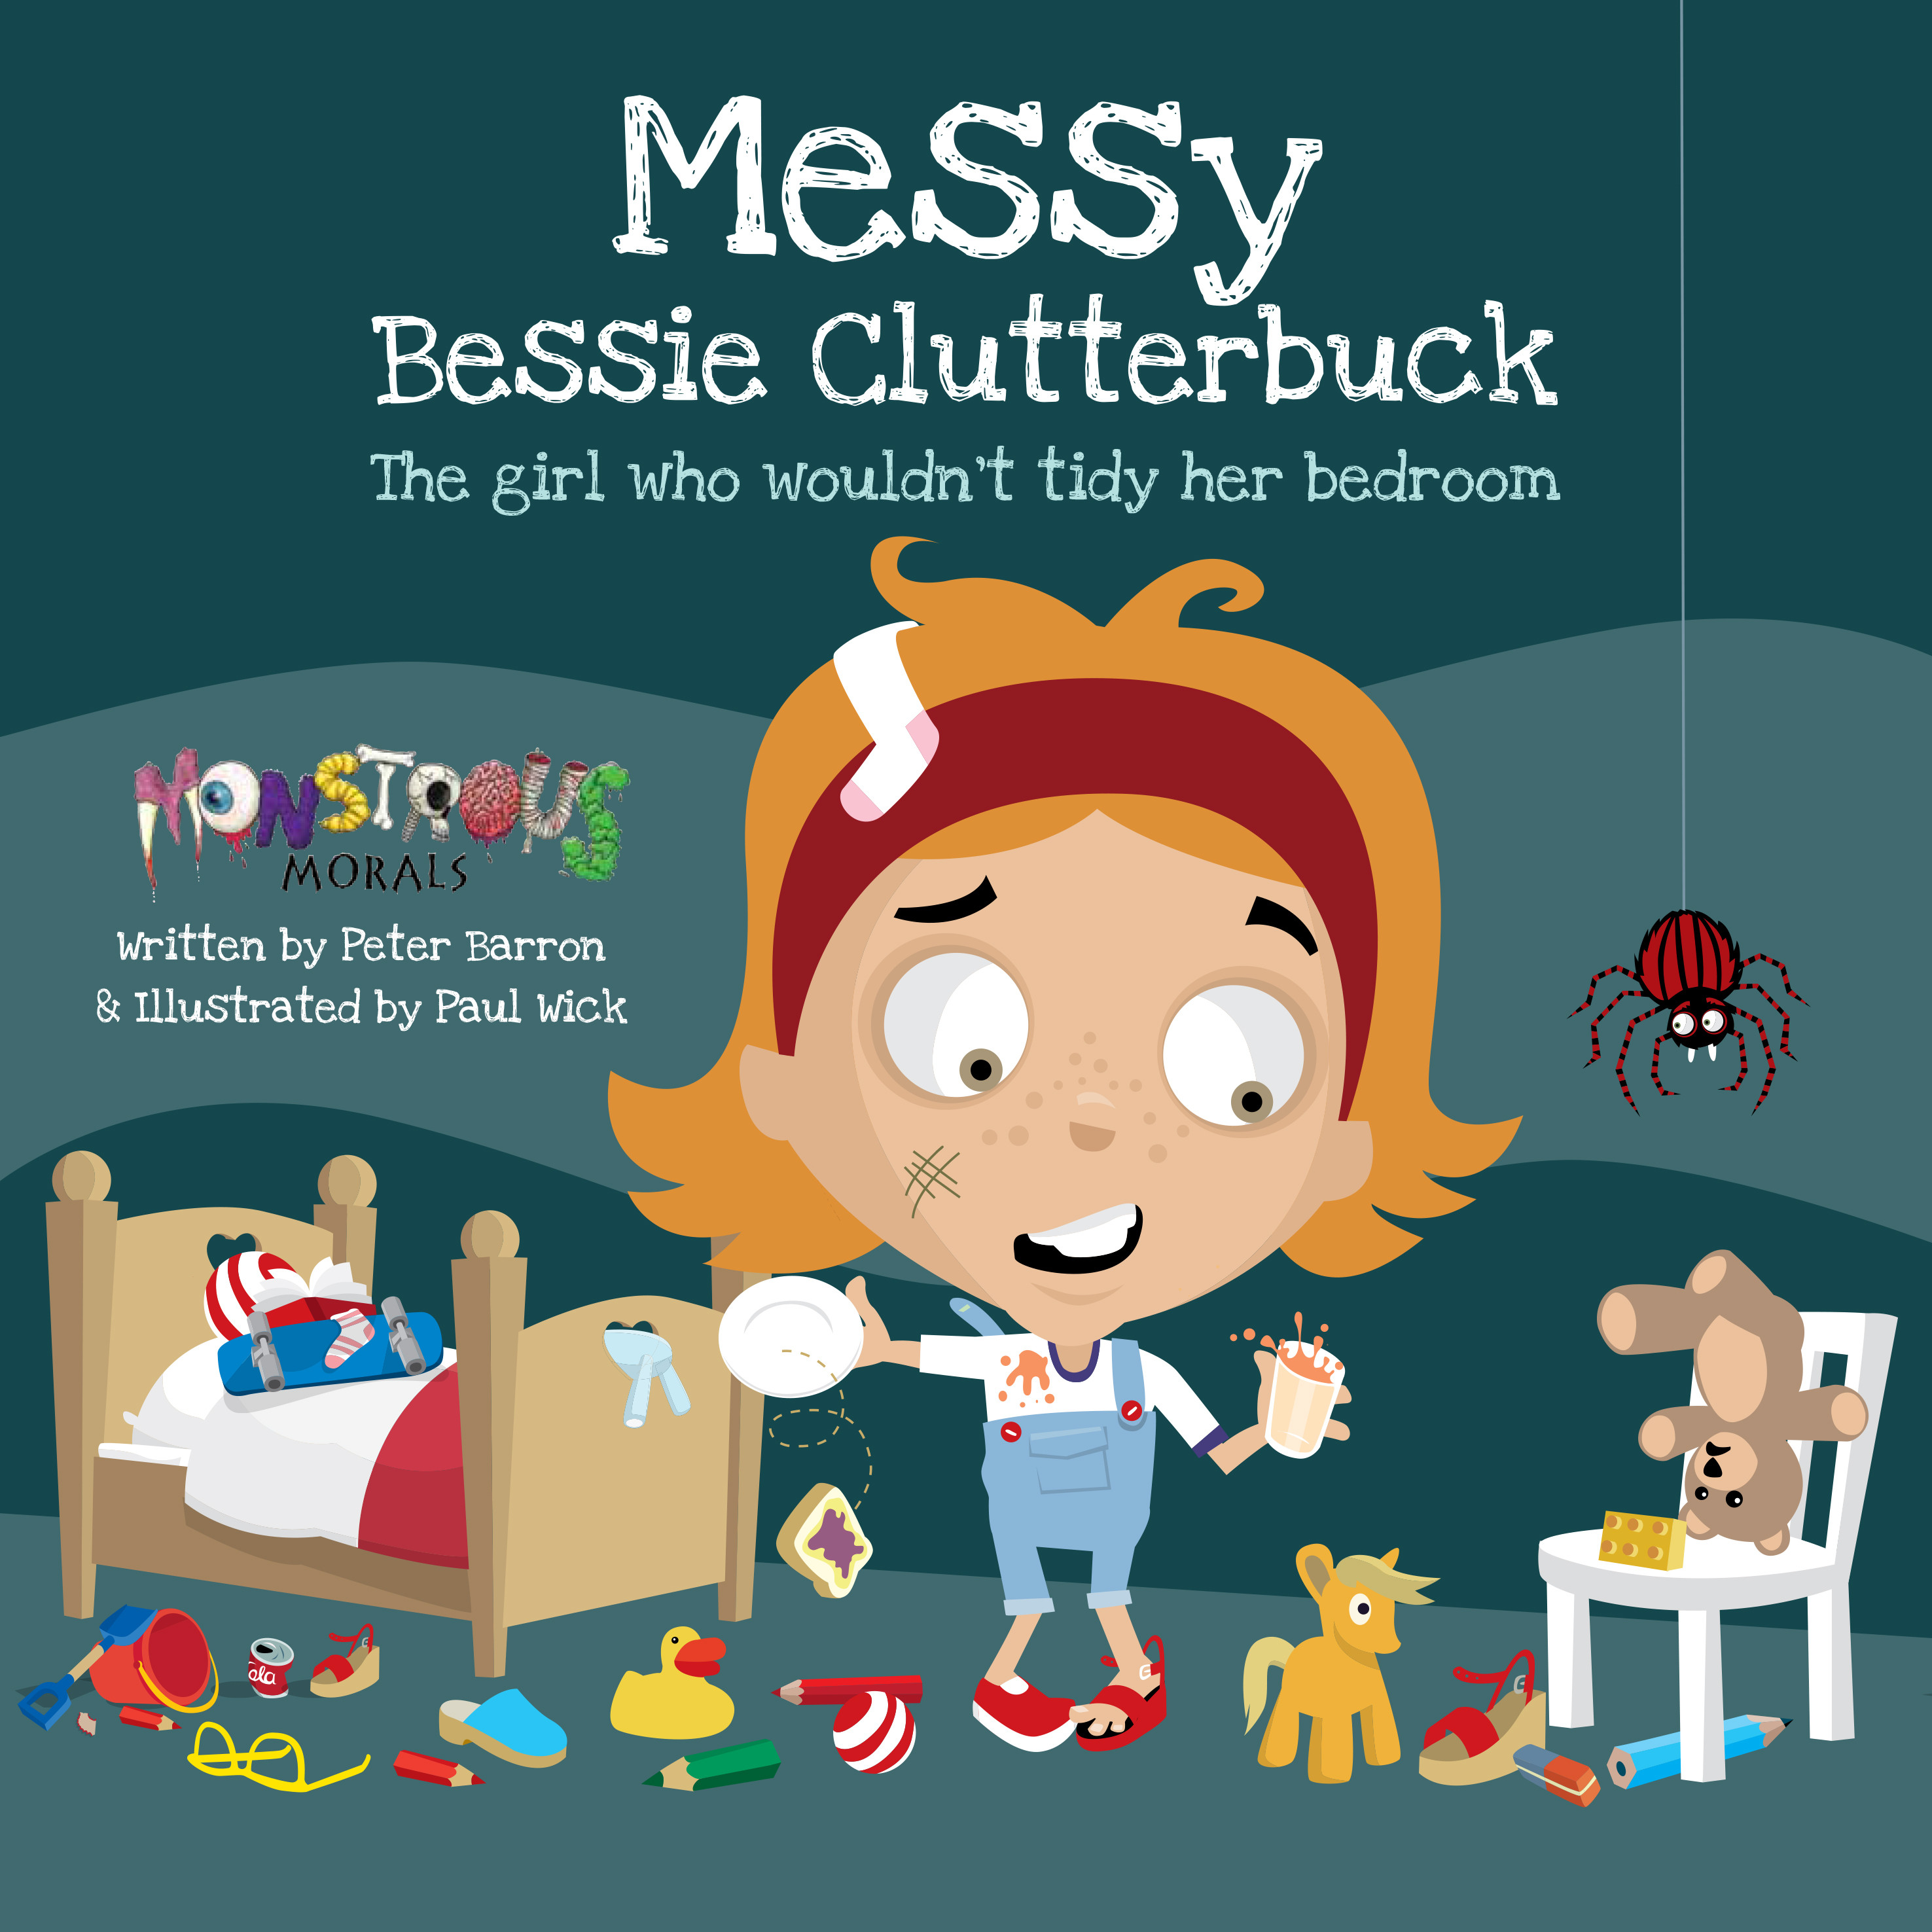 Messy Bessie Clutterbuck: The girl who wouldn't tidy her